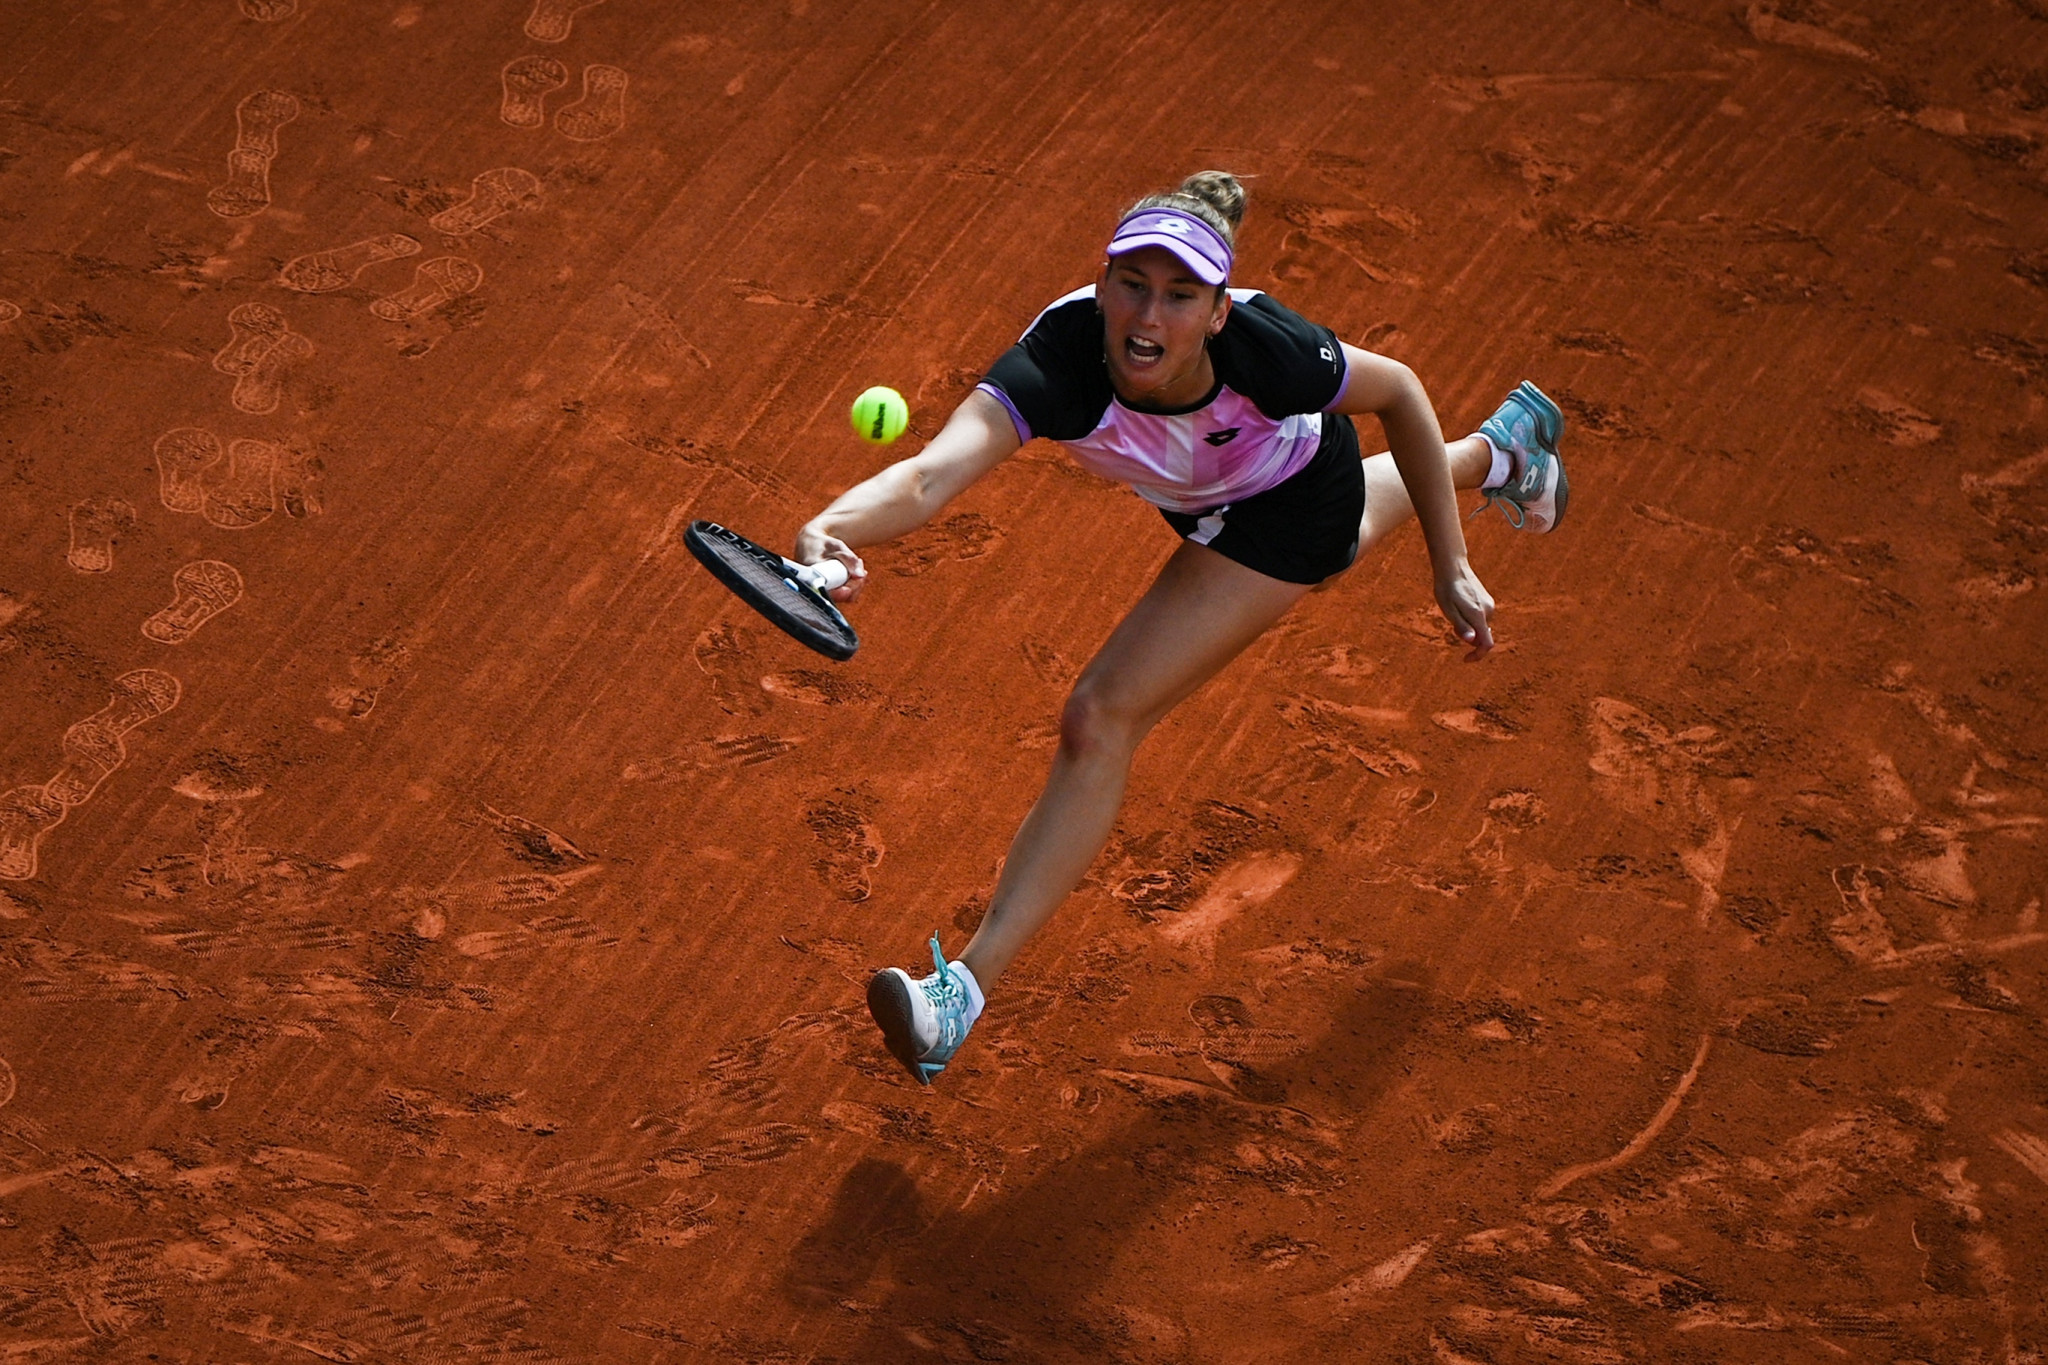 Elise Mertens reaches to retrieve the ball during her defeat to Maria Sakkari ©Getty Images